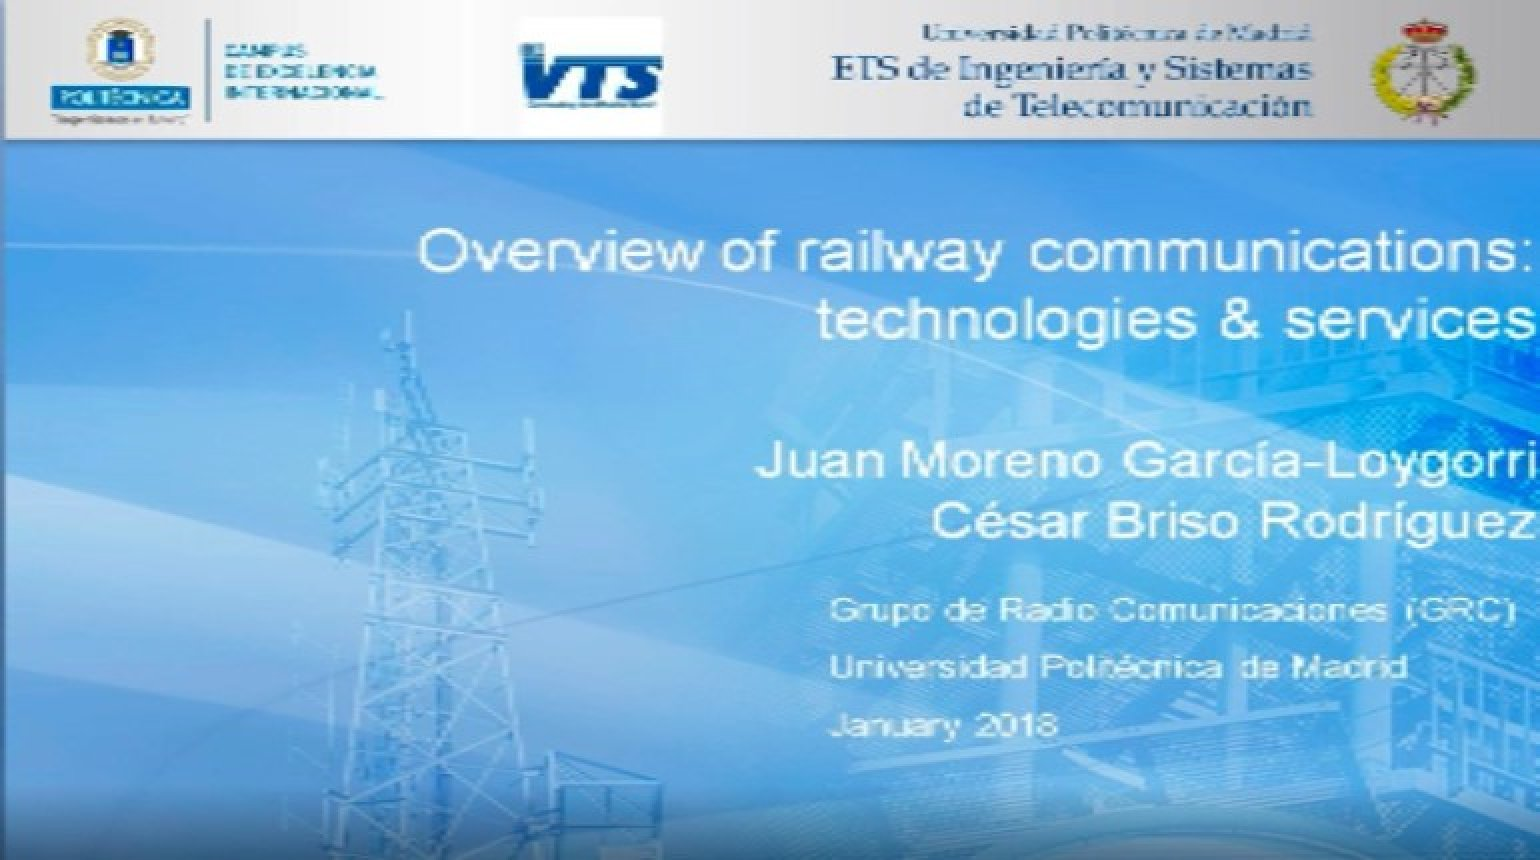 Video - Overview of railway communications: technologies & services